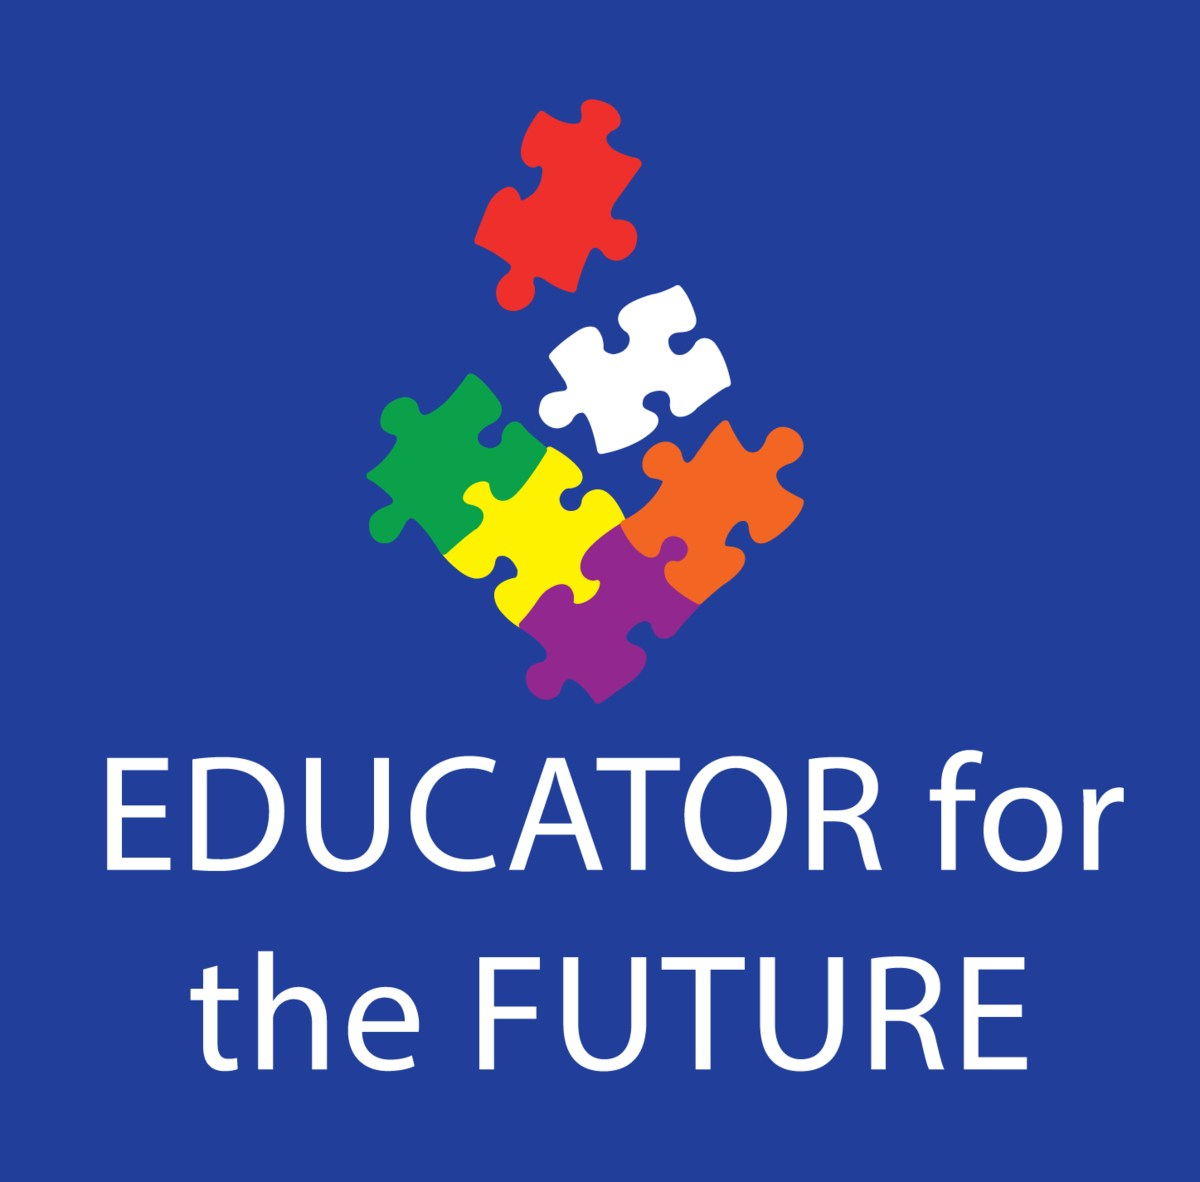 Educator for the Future graphic